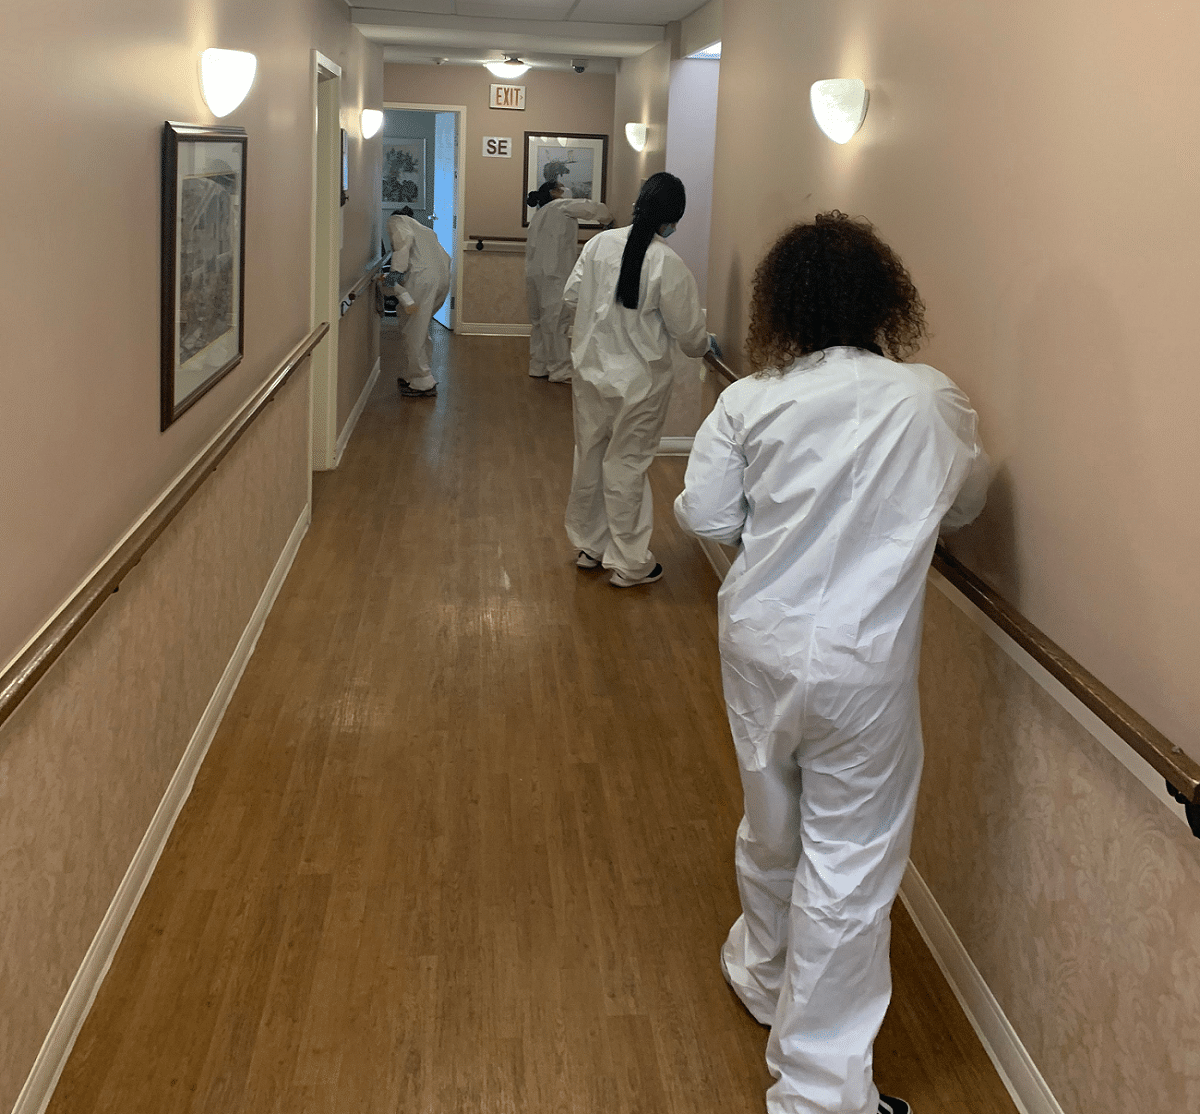 Disinfectant Services to COVID-19 Positive Infected Areas | Picture Perfect Cleaning